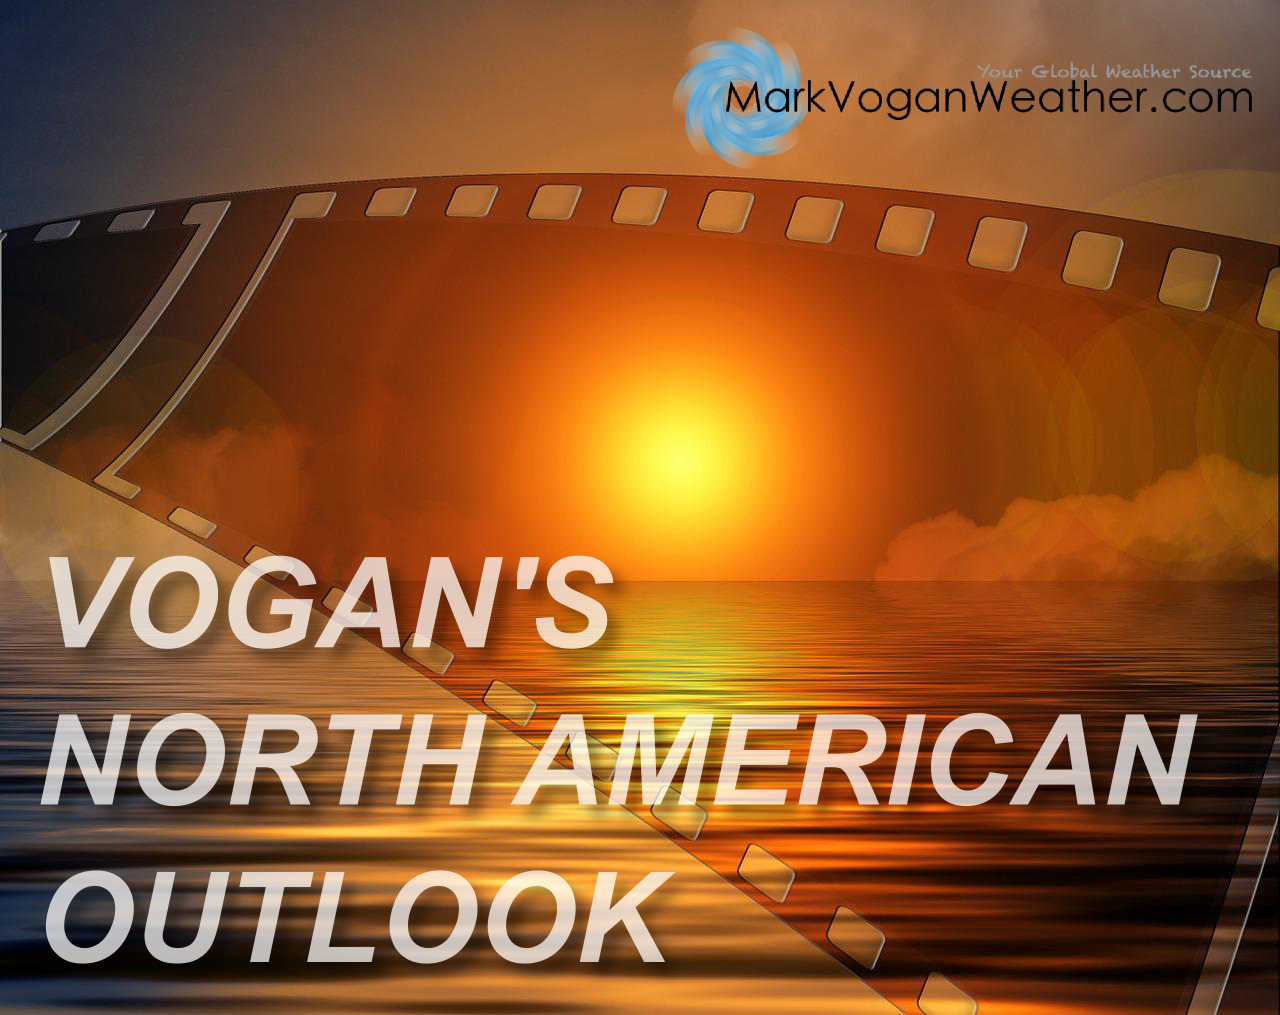 WED 23 JUL: VOGAN'S NORTH AMERICAN OUTLOOK